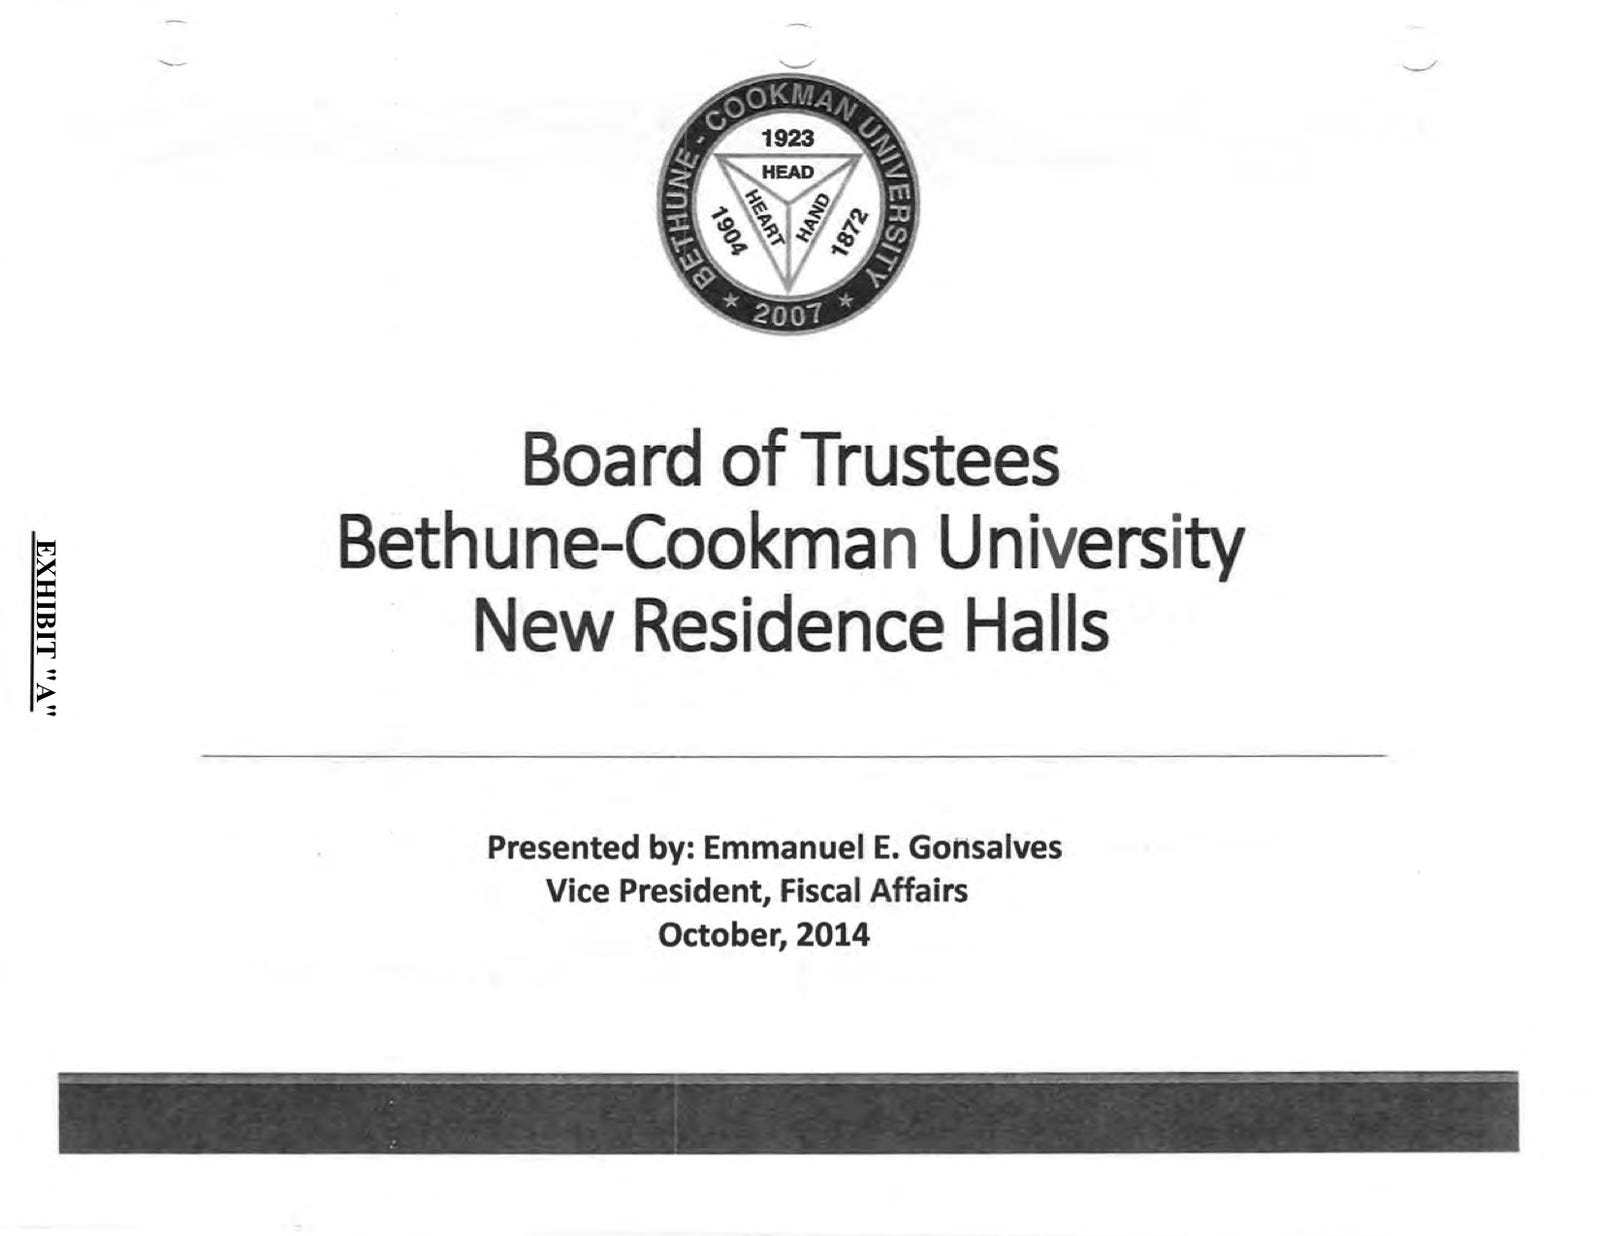 Powerpoint presentation on dorm deal for trustees.